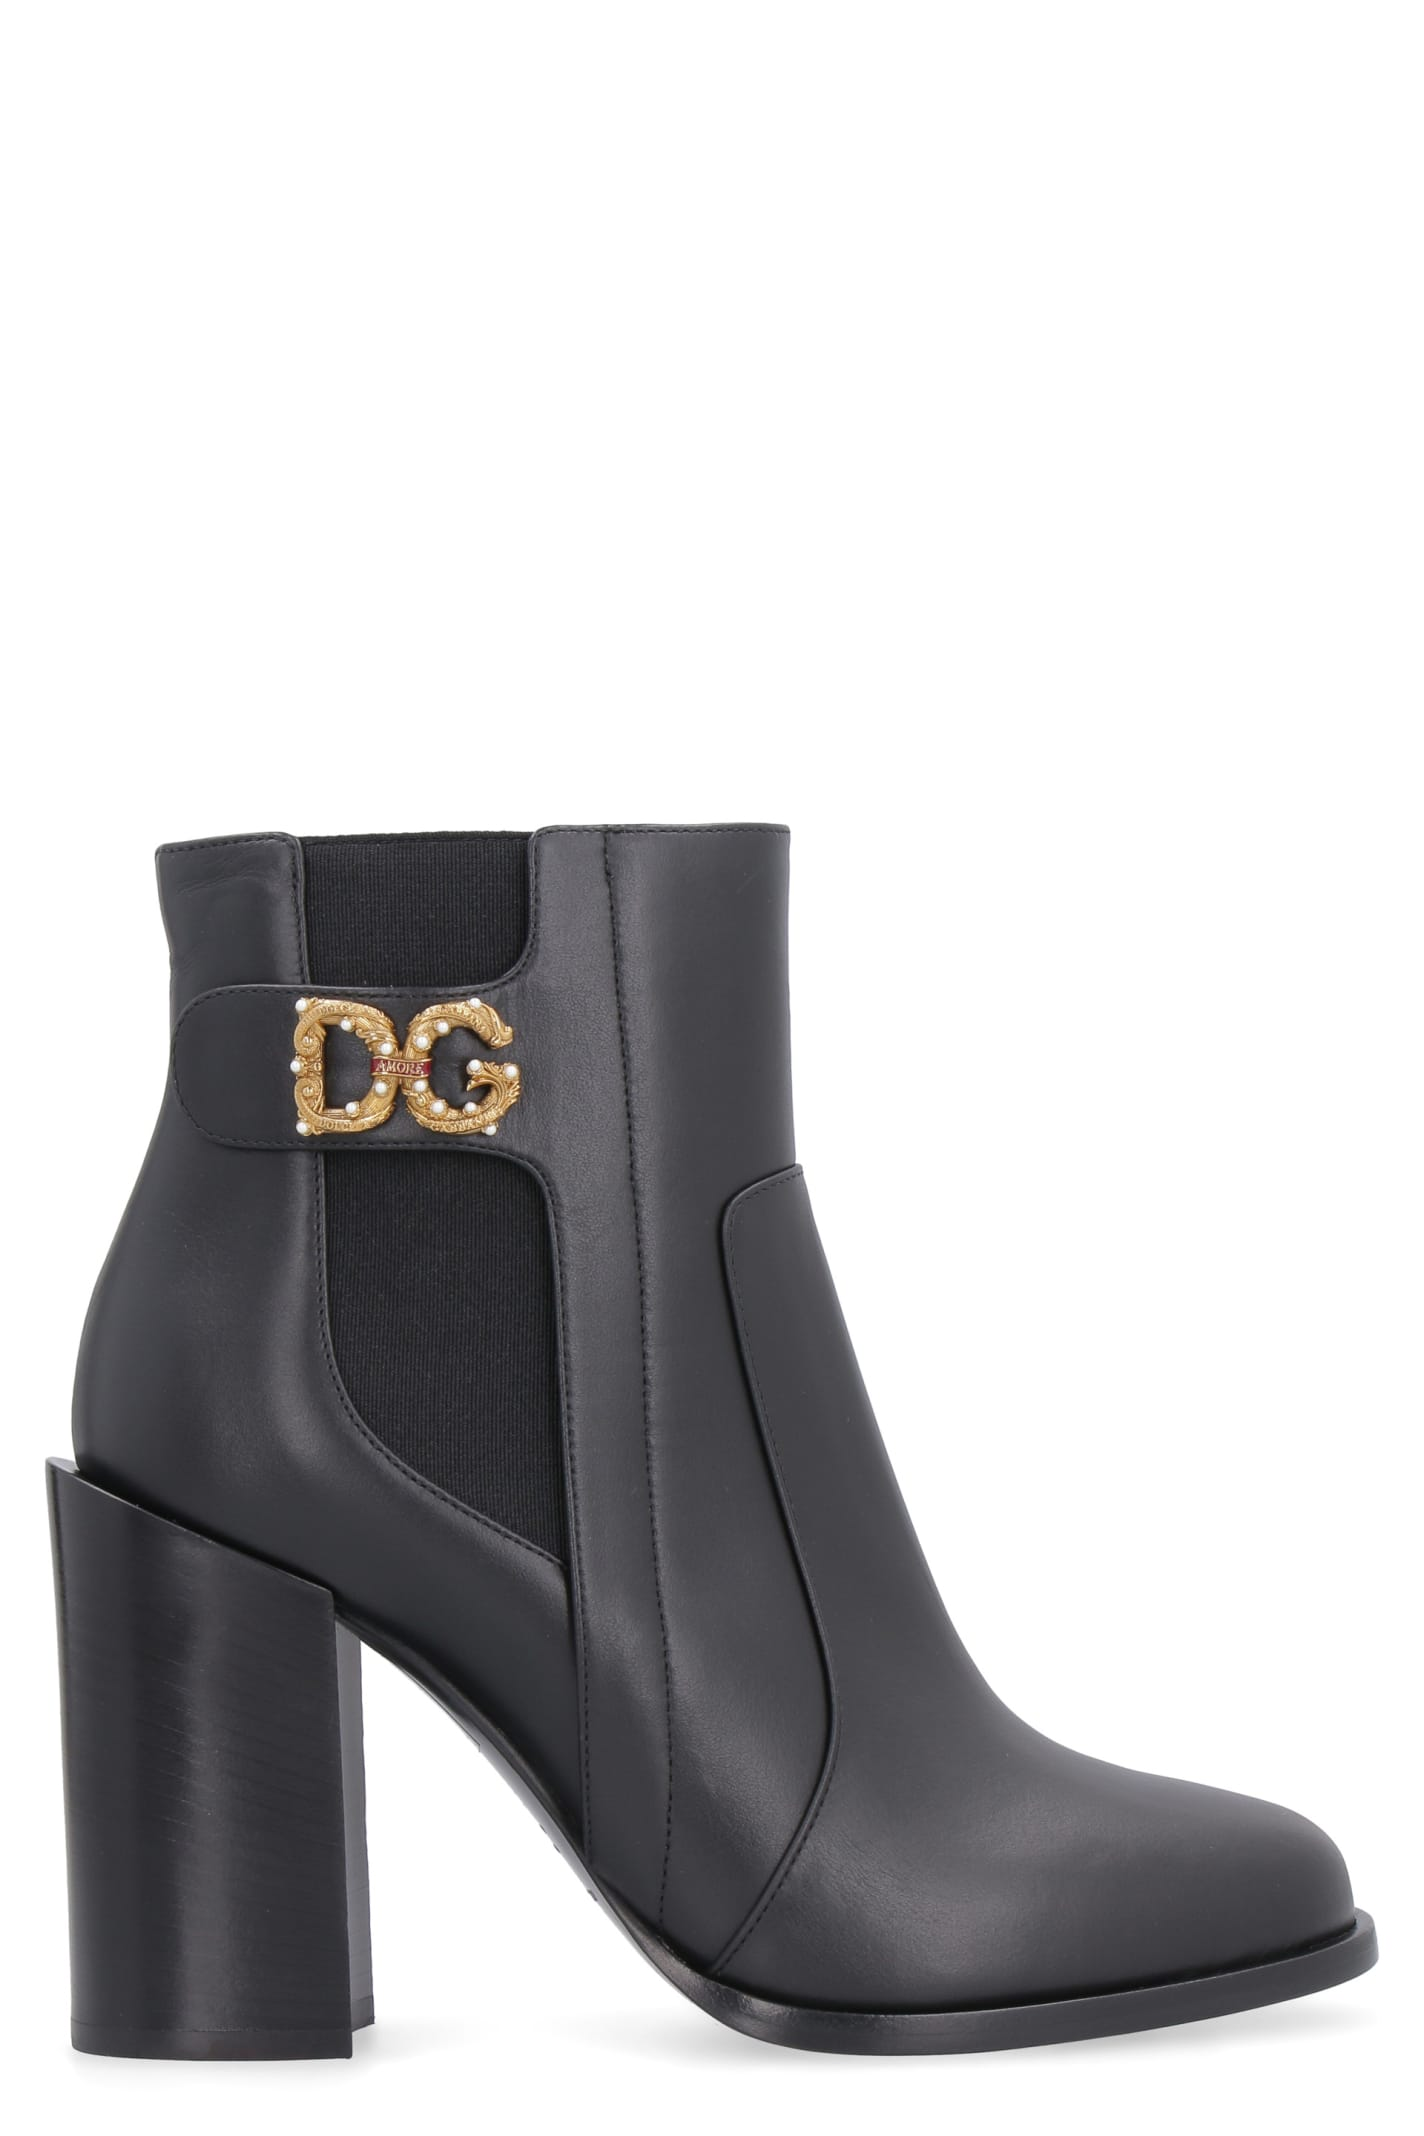 Buy Dolce & Gabbana Rodeo Leather Ankle Boots online, shop Dolce & Gabbana shoes with free shipping